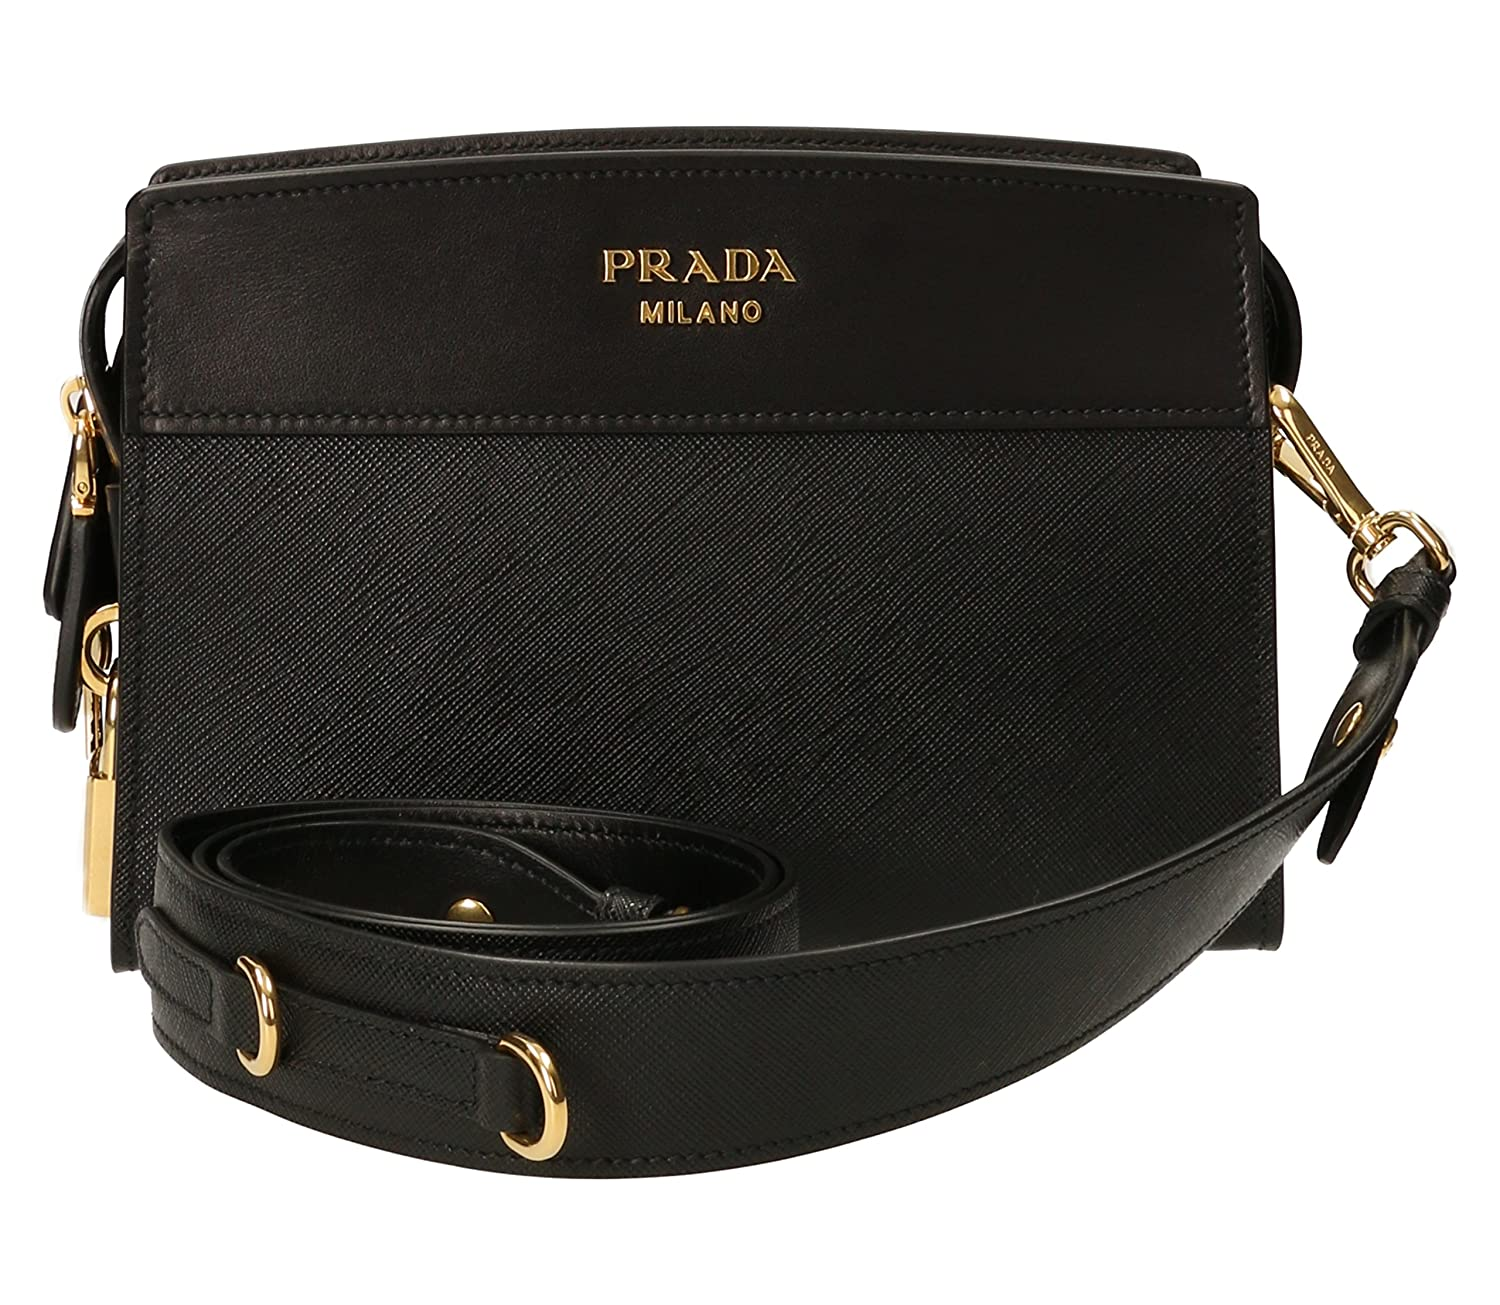 Amazon.com  Prada Black Leather Clutch Bag With Shoulder Strap 1bh043 Waist  bag  Shoes ba51dd49a7199